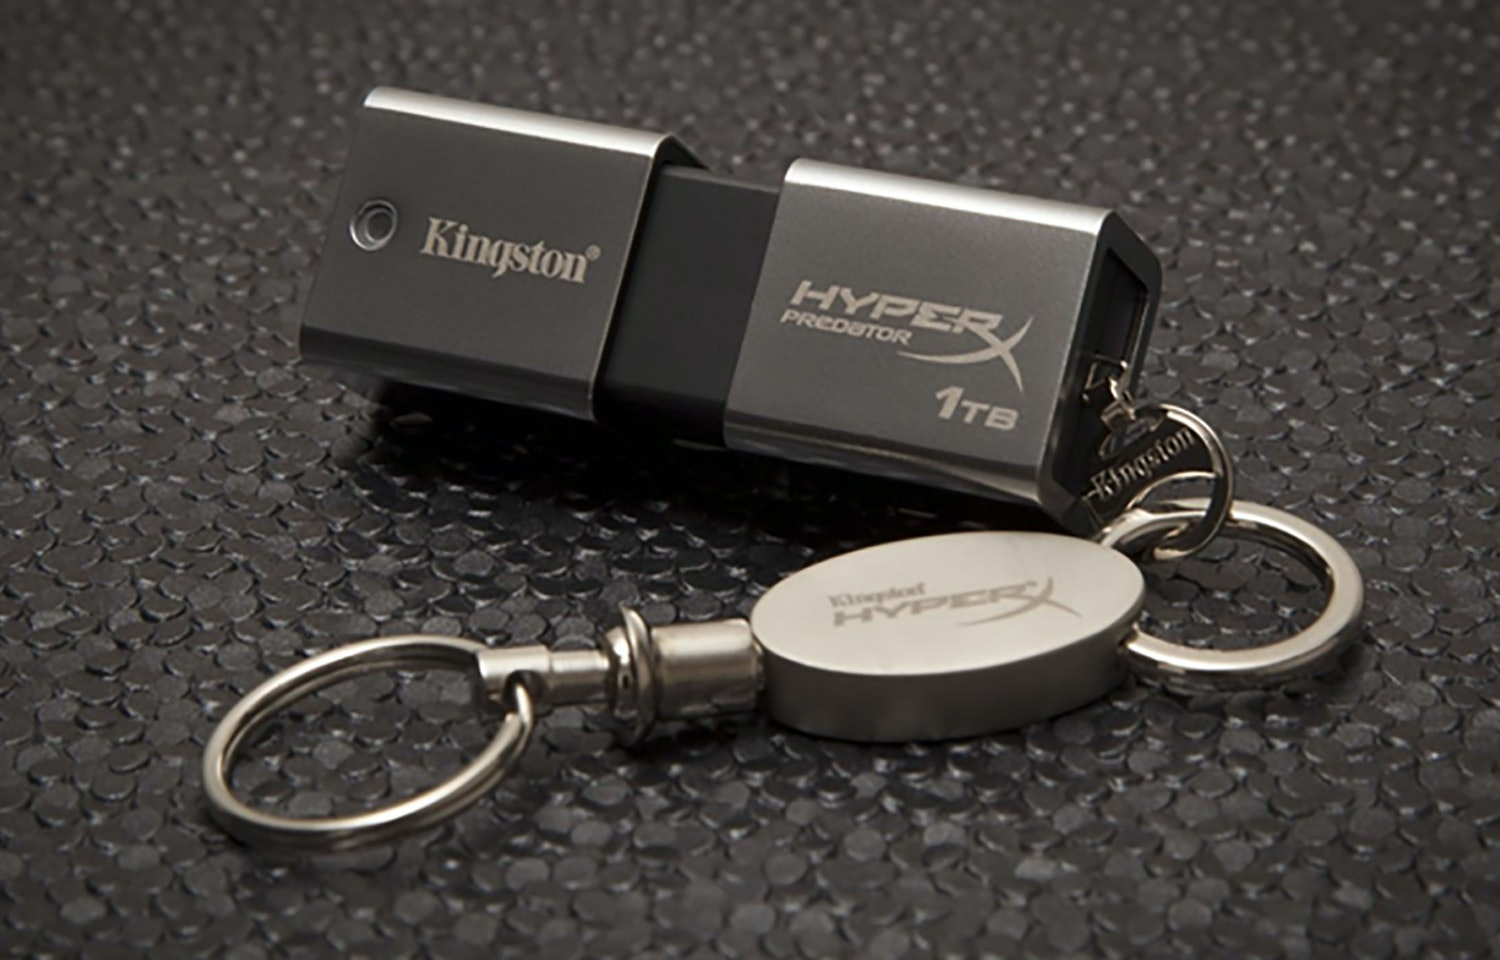 Kingston HyperX Predator 1TB USB 3.0 Flash Drive